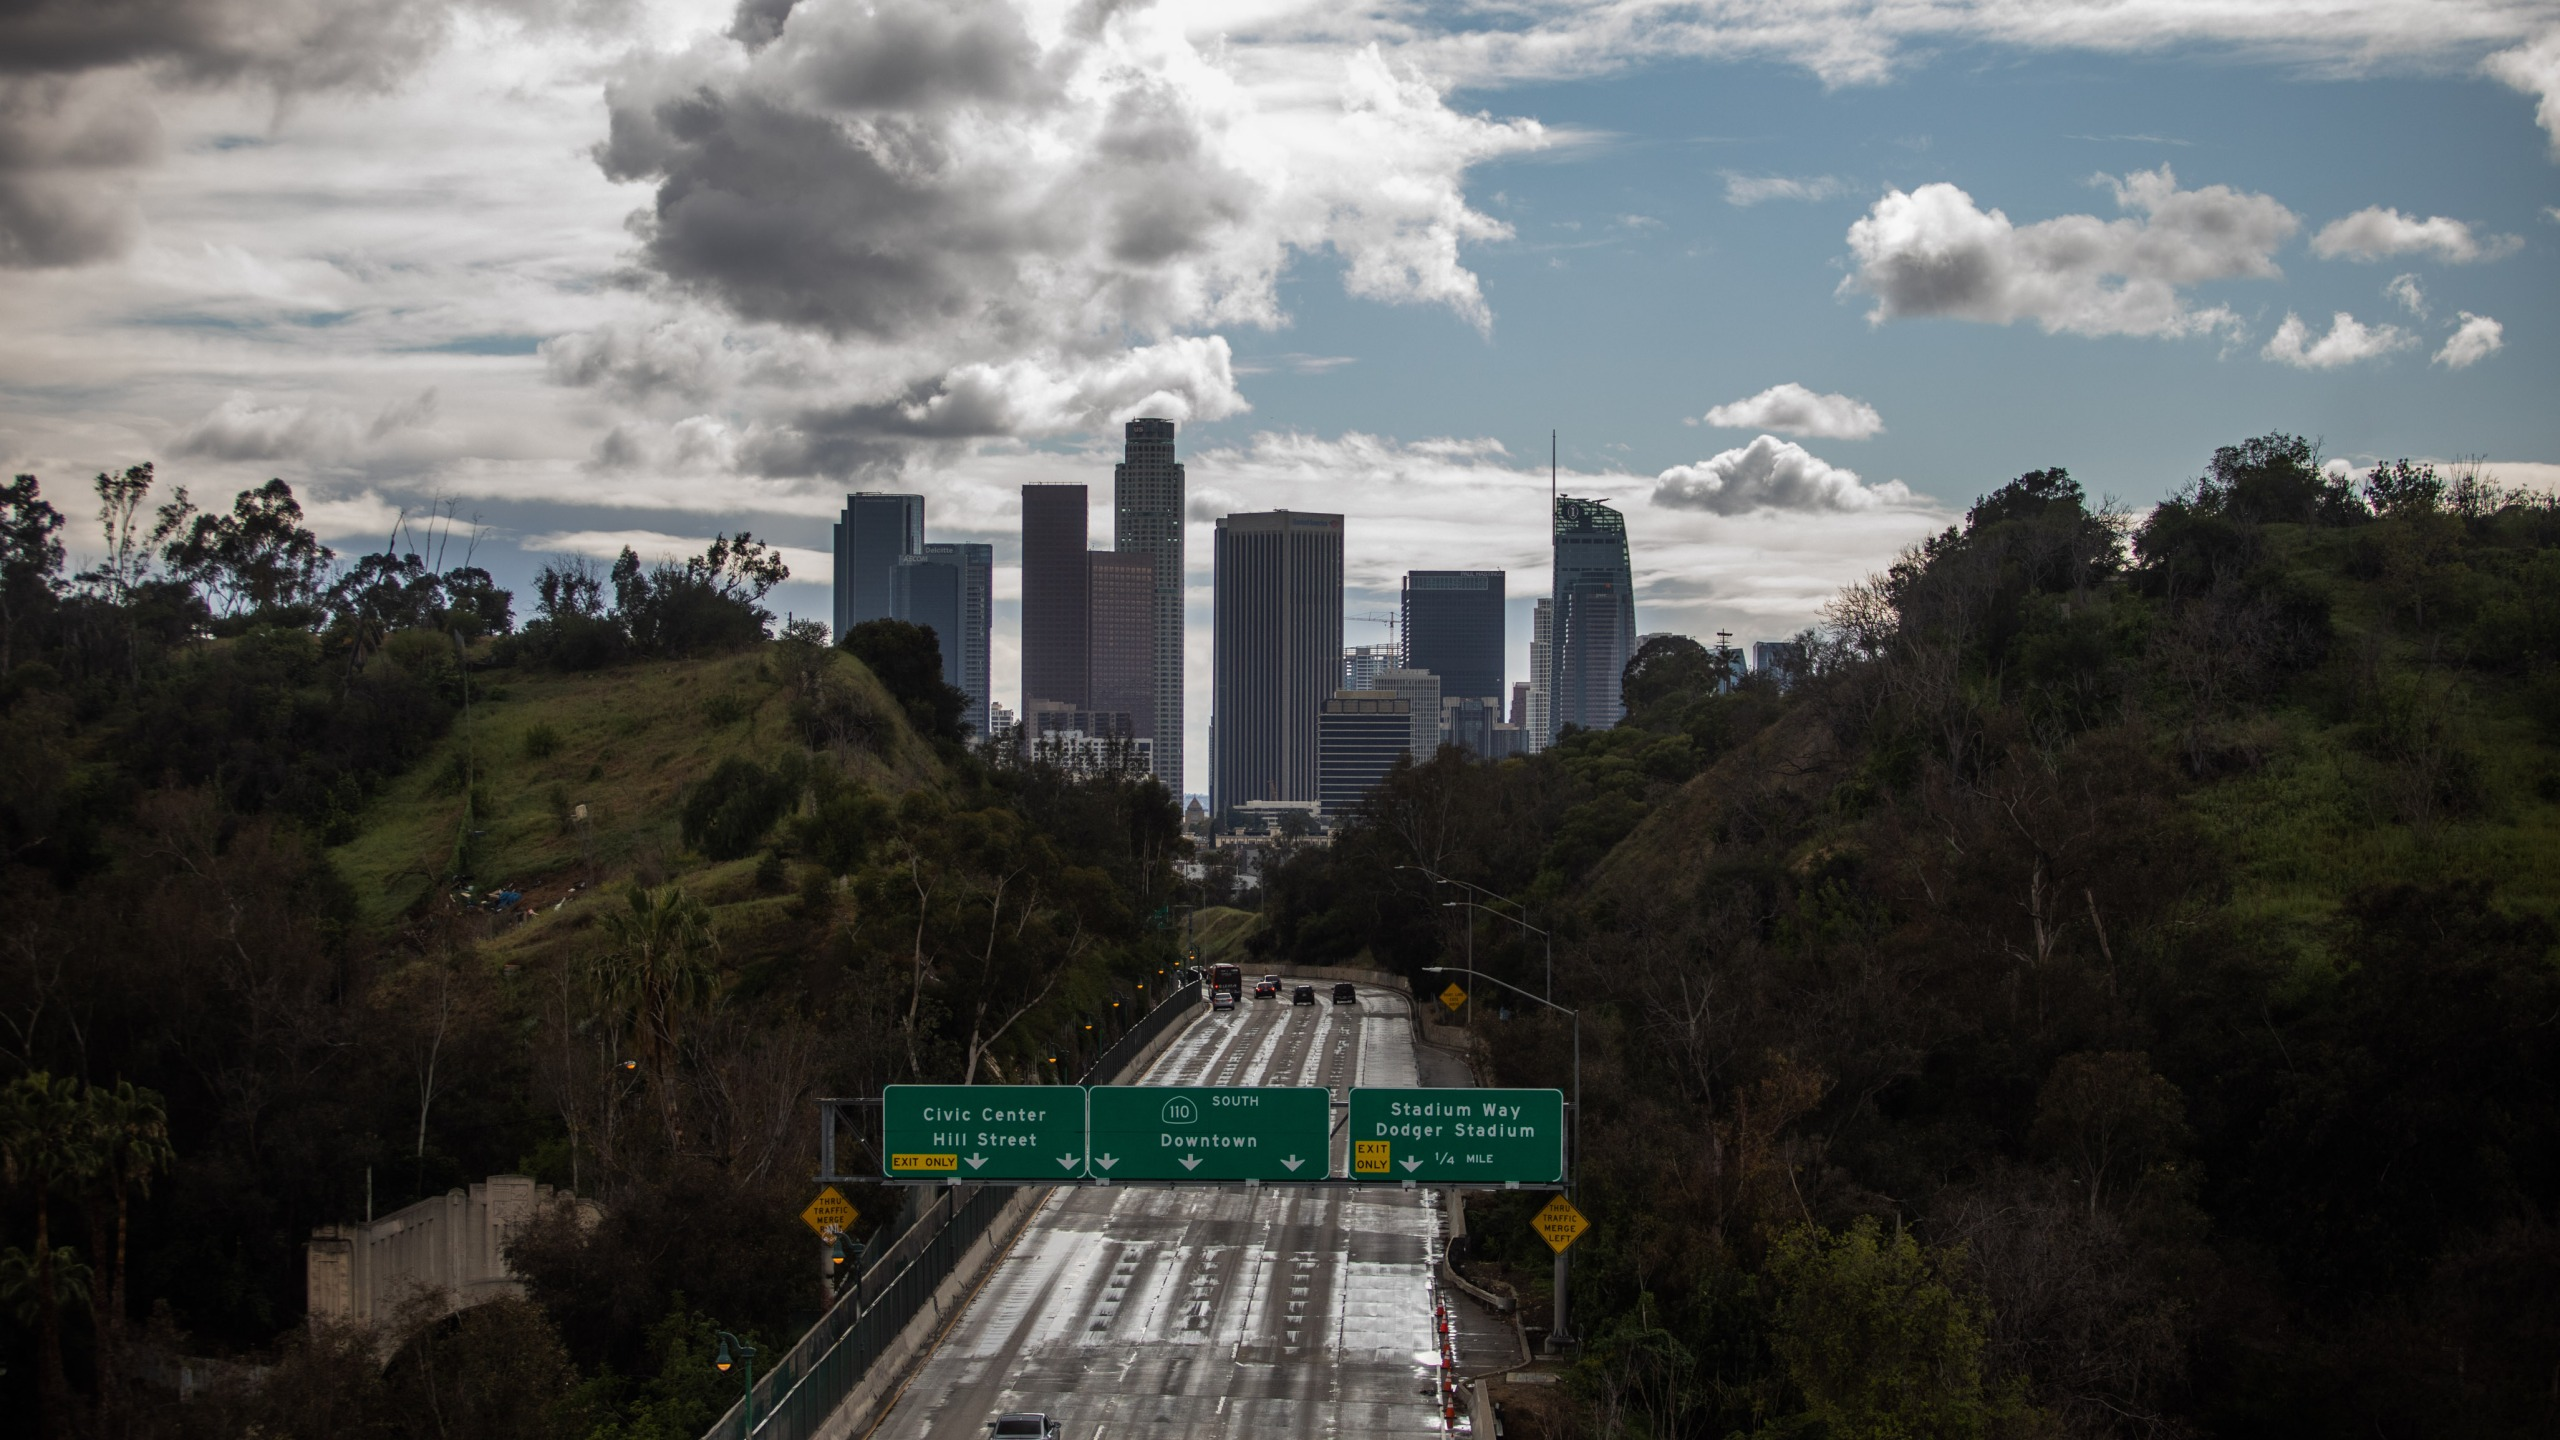 A nearly empty 110 Freeway is seen near downtown Los Angeles on March 19, 2020. (Credit: Apu Gomes / AFP / Getty Images)